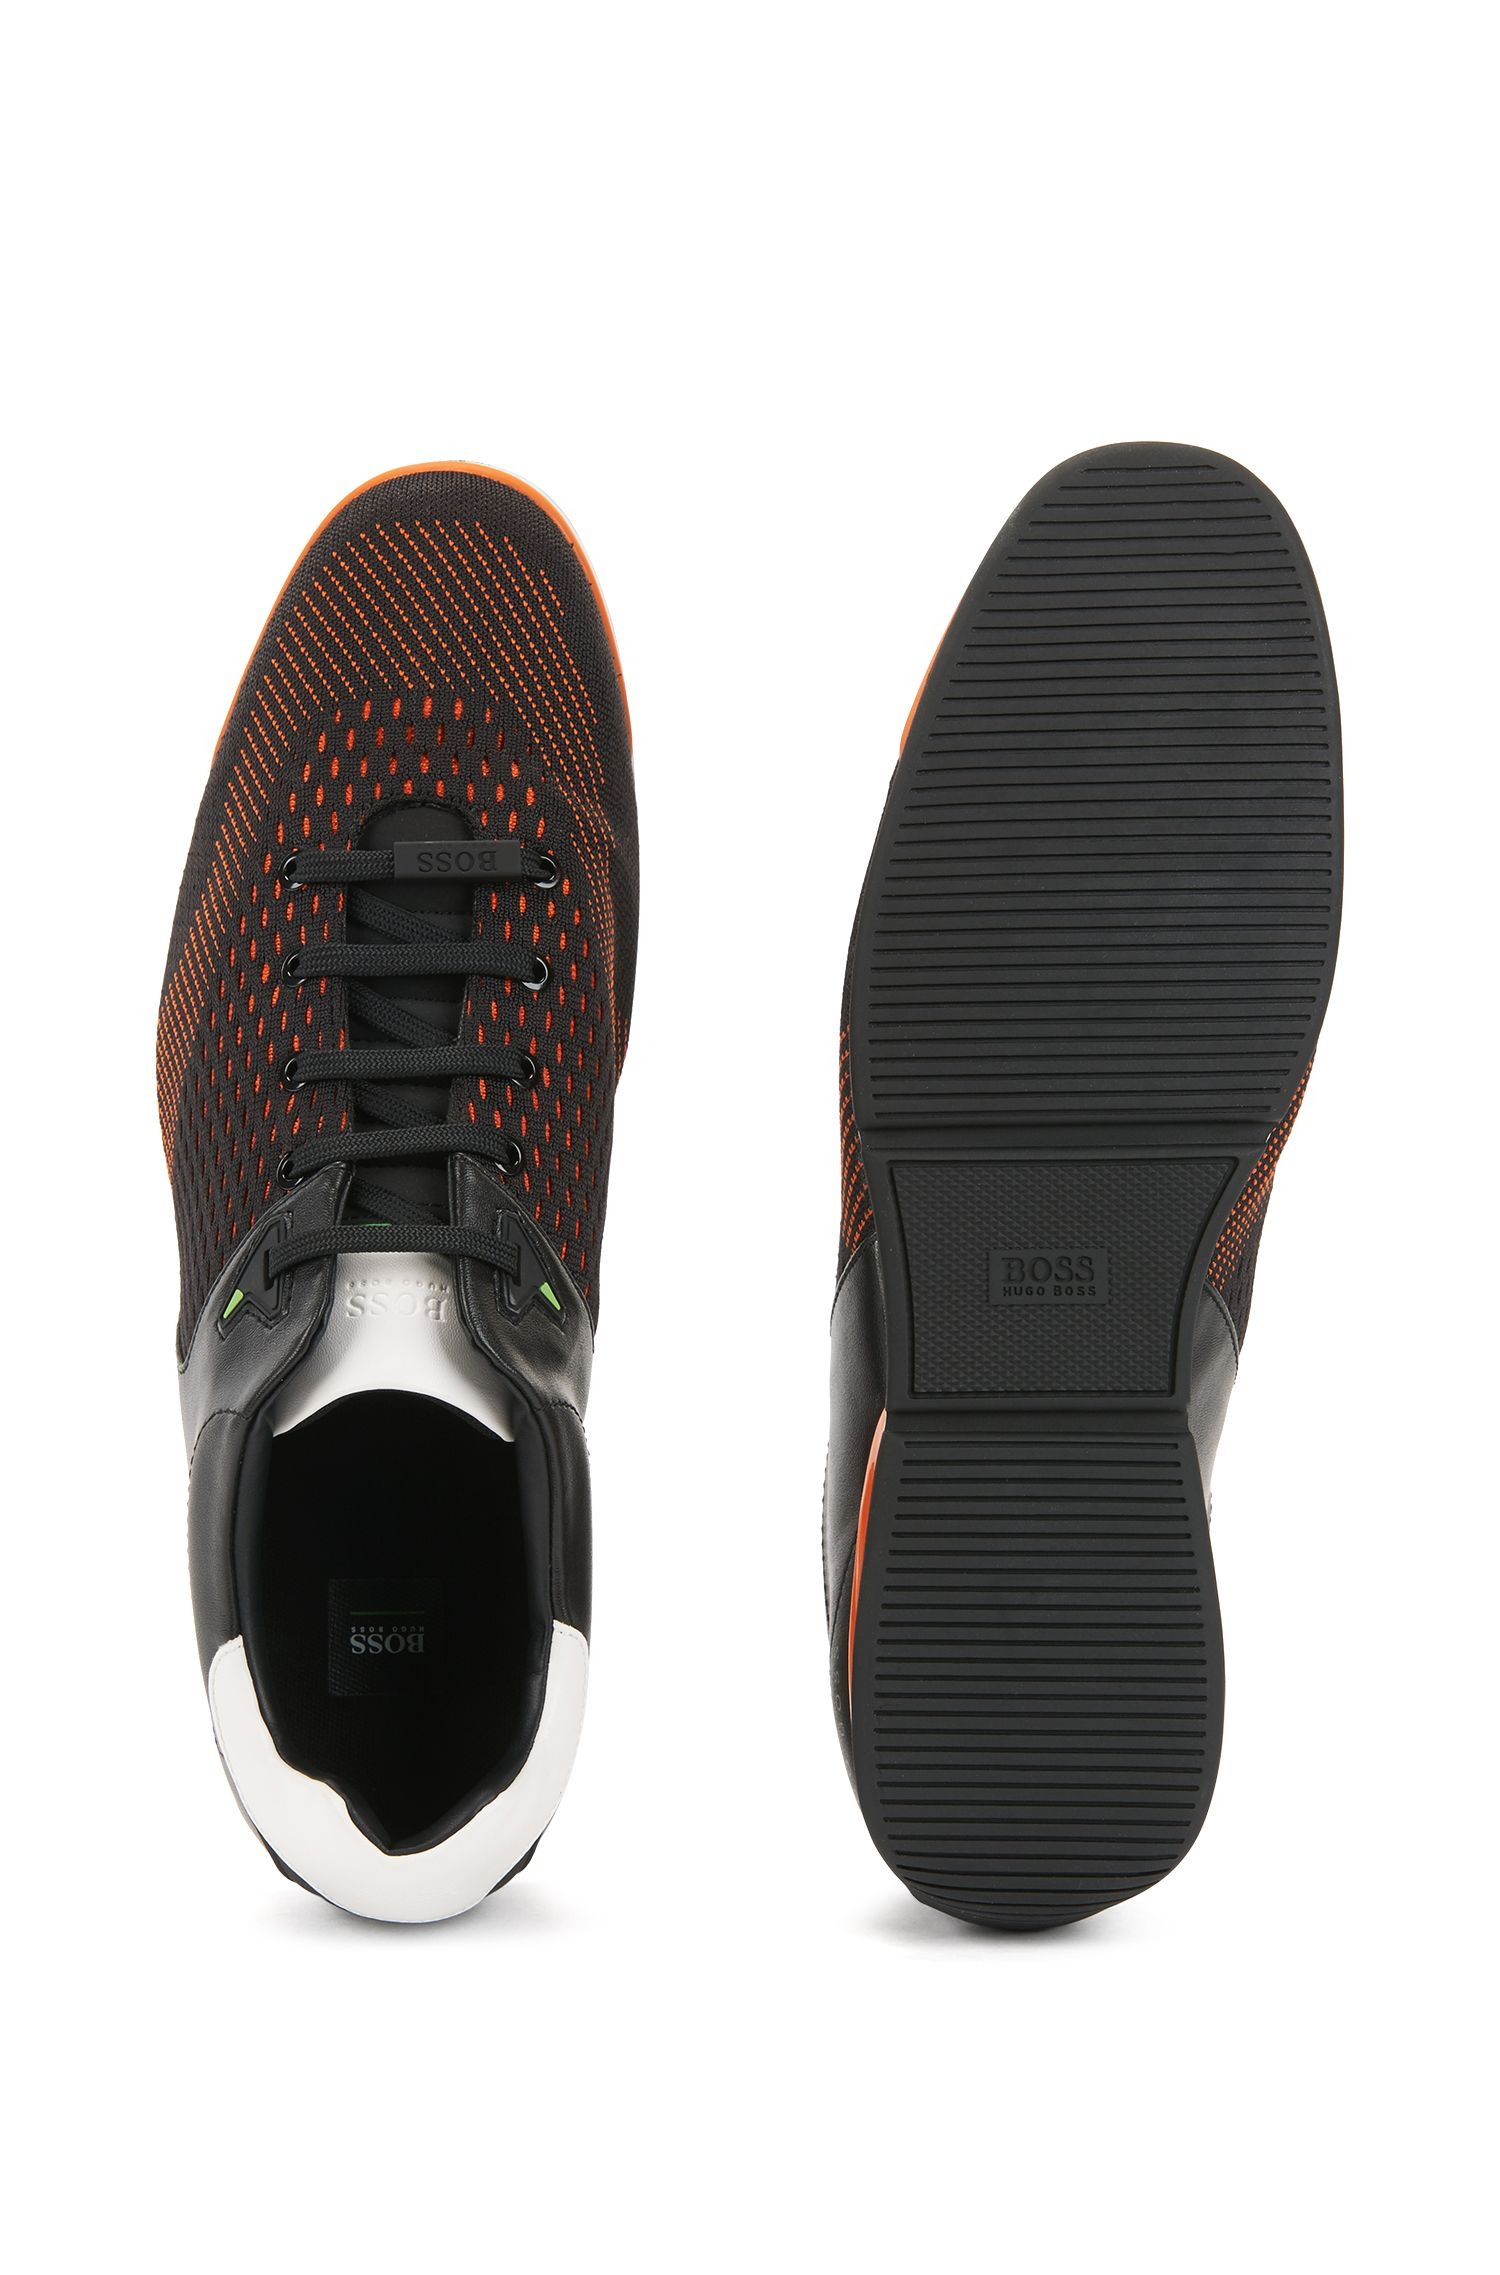 Low-profile sneakers with jacquard-knit uppers